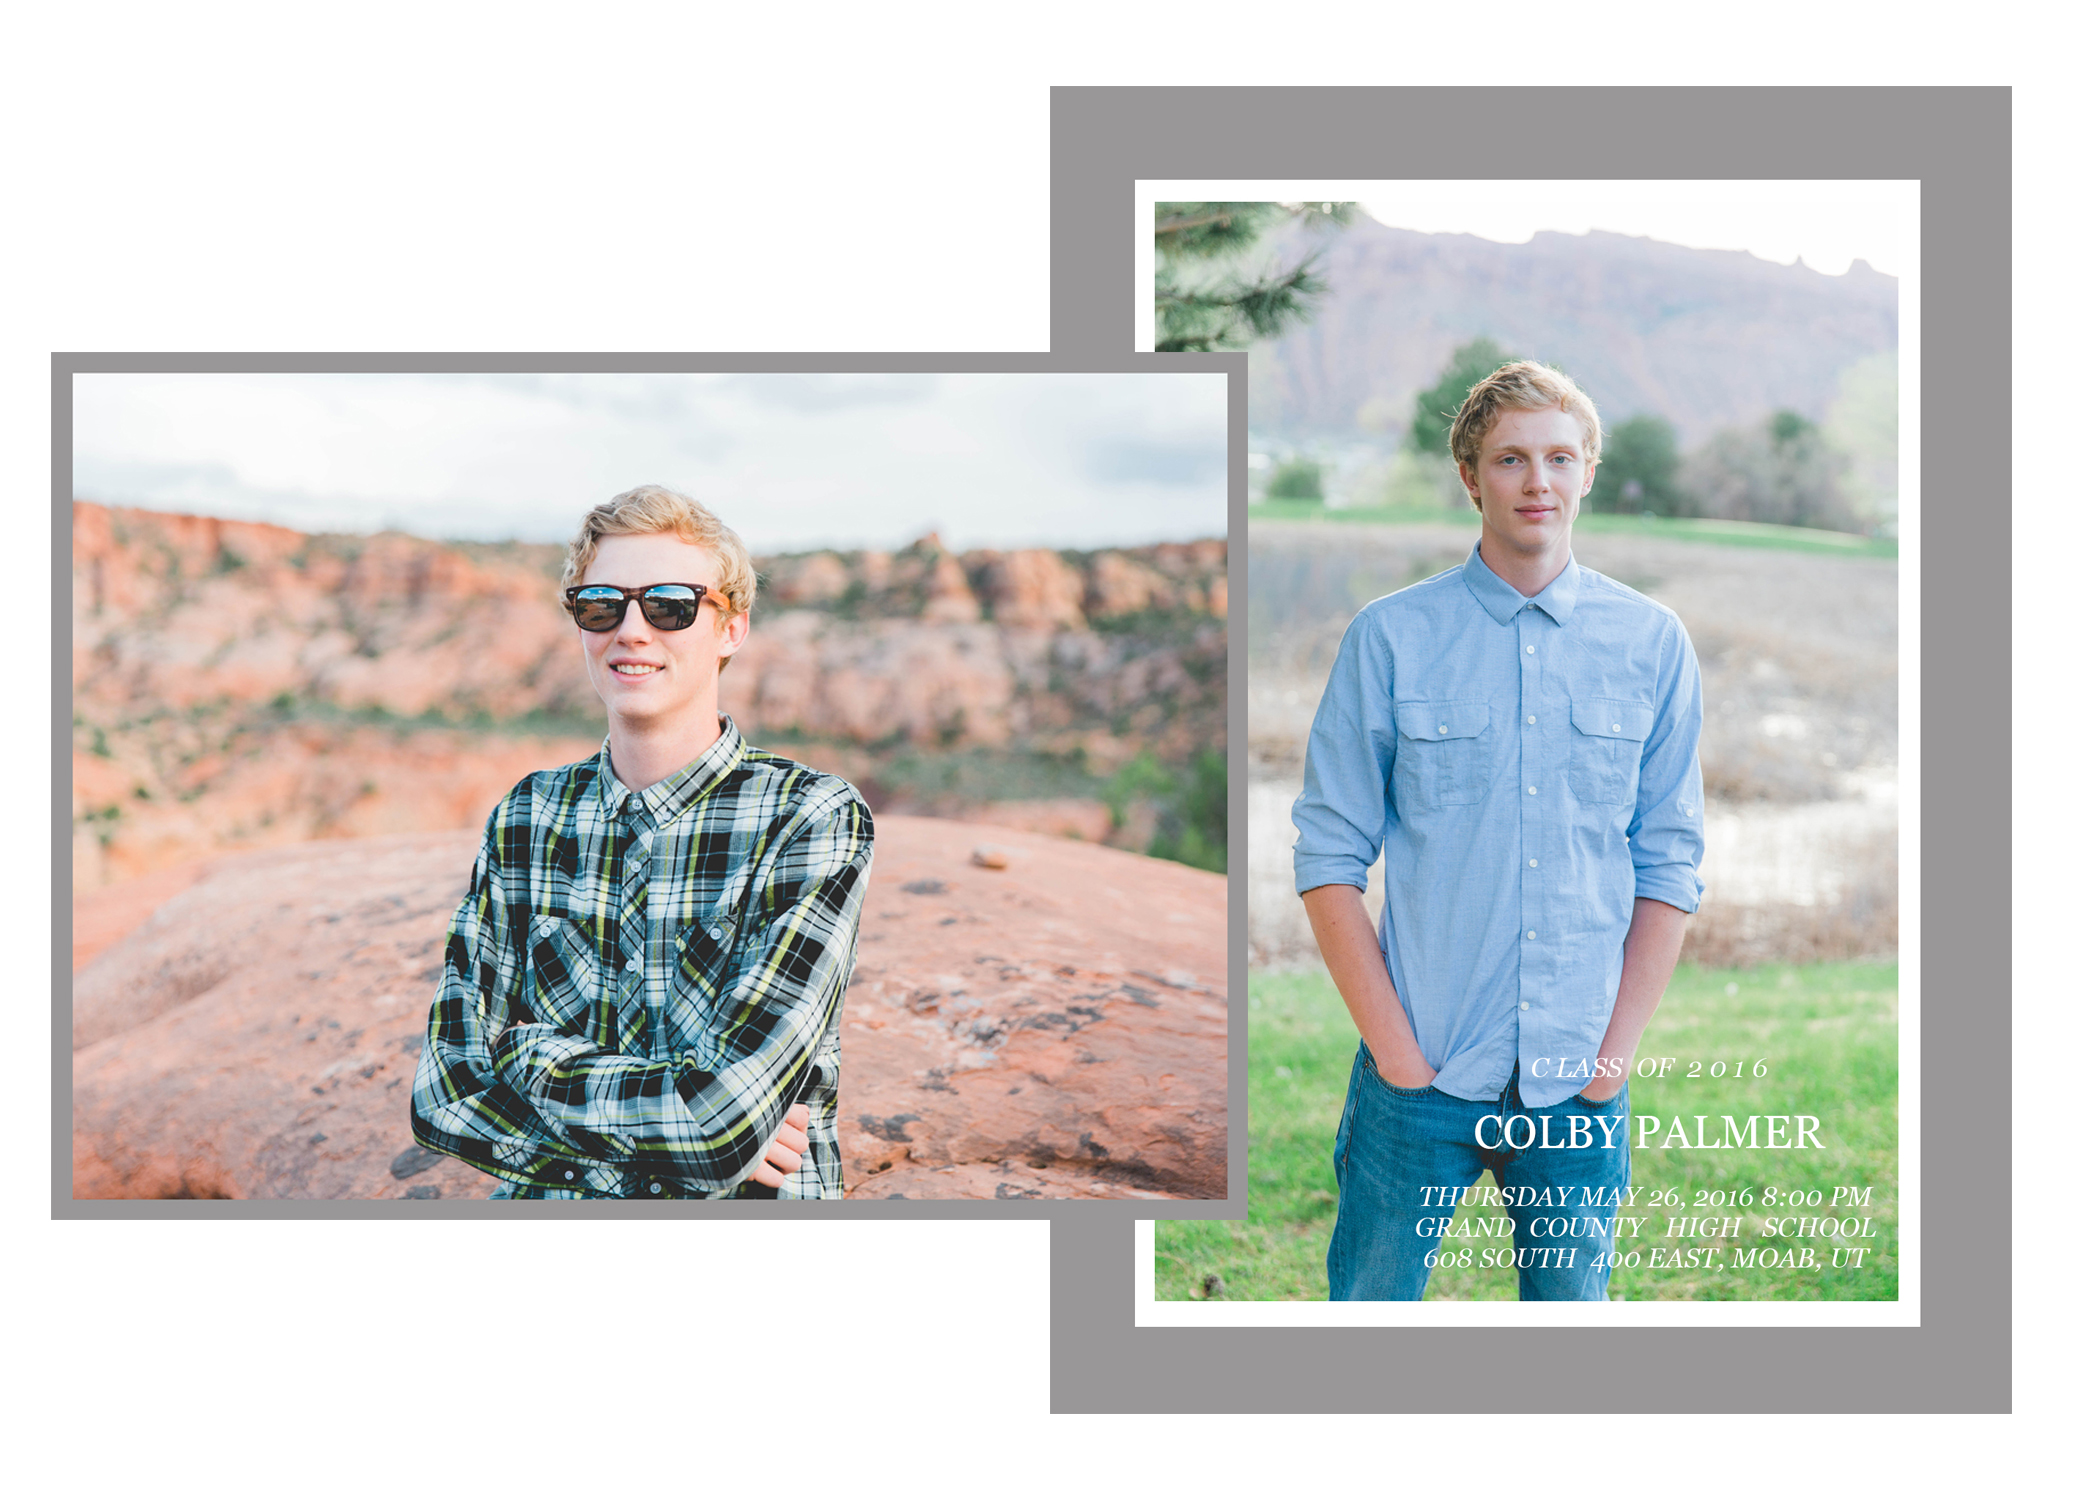 KaLeigh Welch Photography, Moab, UT Senior Portrait Photographer